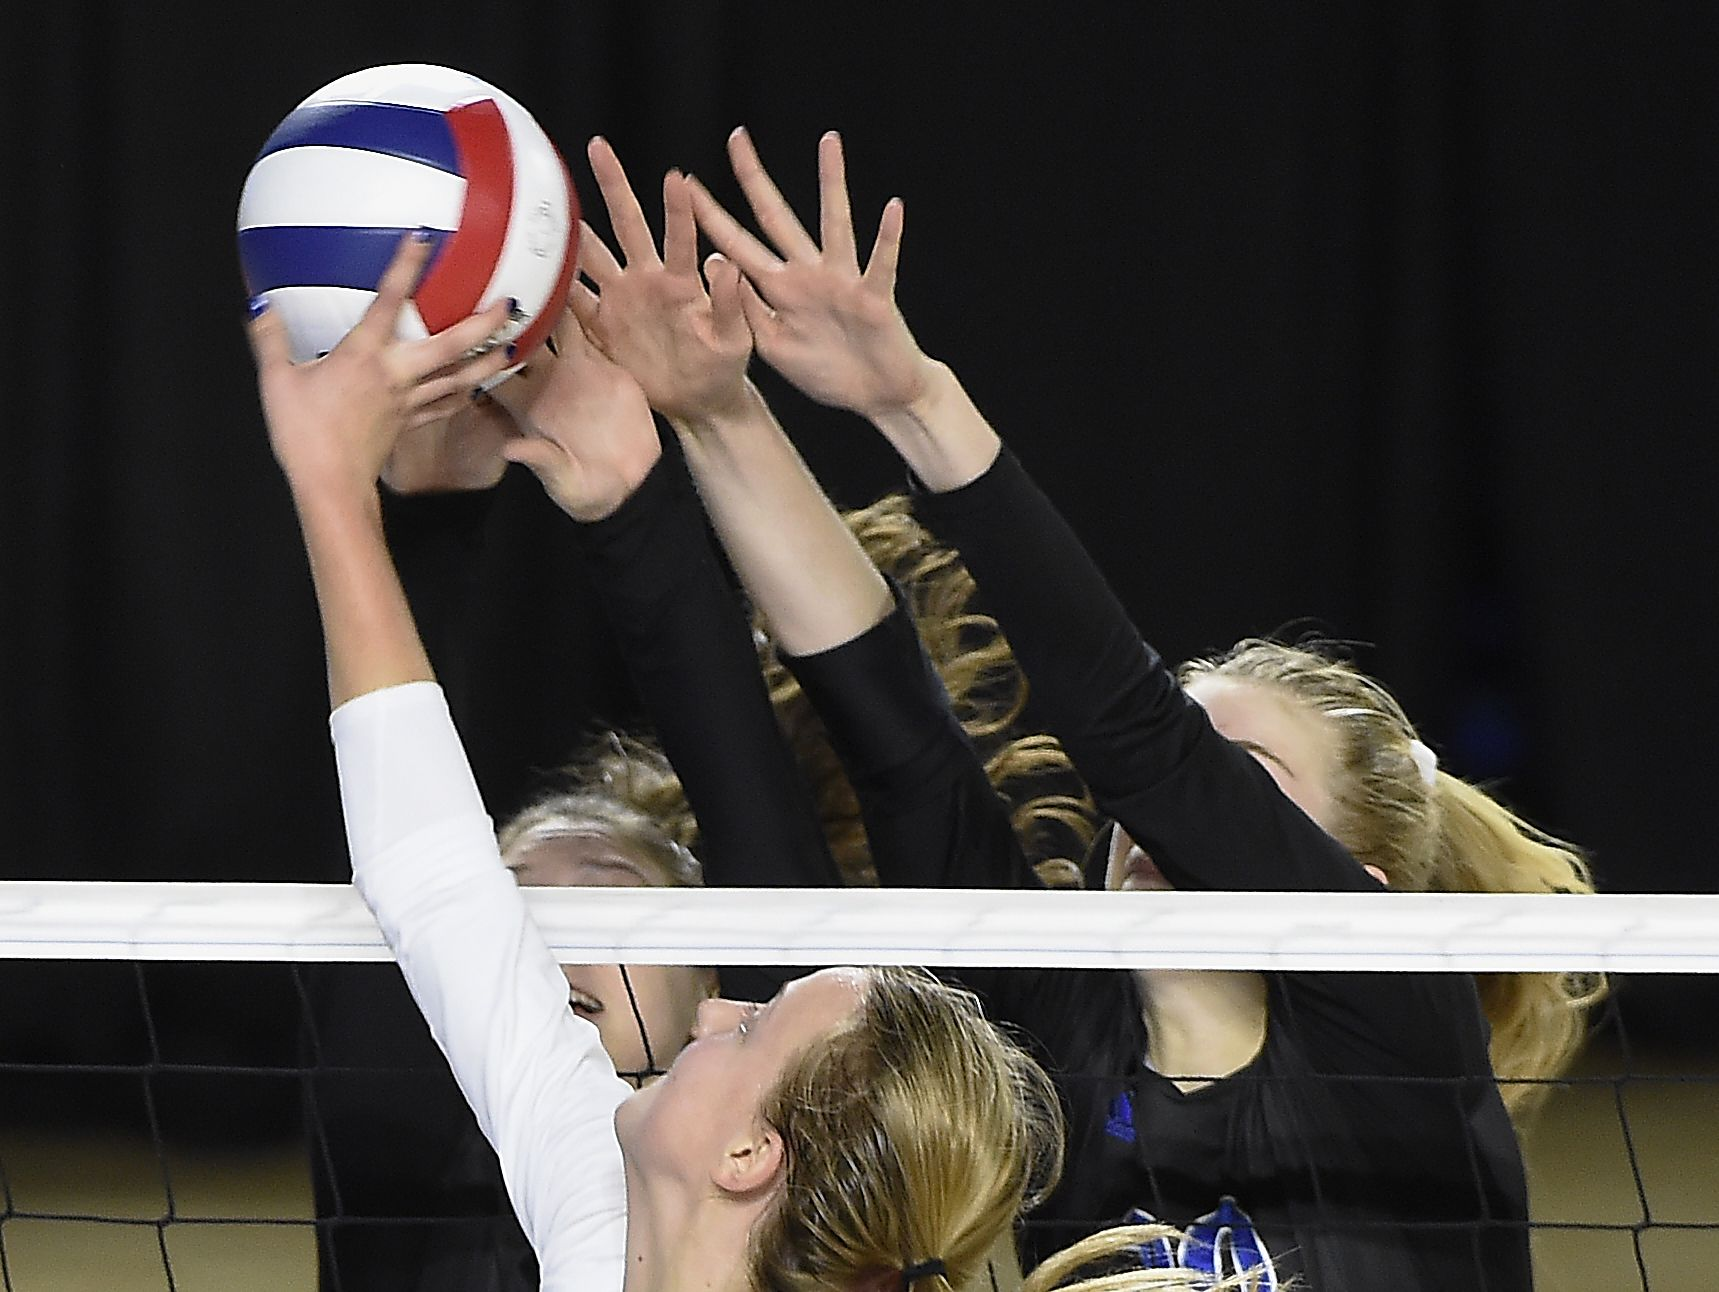 Harden Valley's Alexandria Kirby (10) pushes the ball over the net as Brentwood plays Hardin Valley at MTSU's Murphy Center during the TSSAA volleyball state tournament on Oct. 20, 2016.